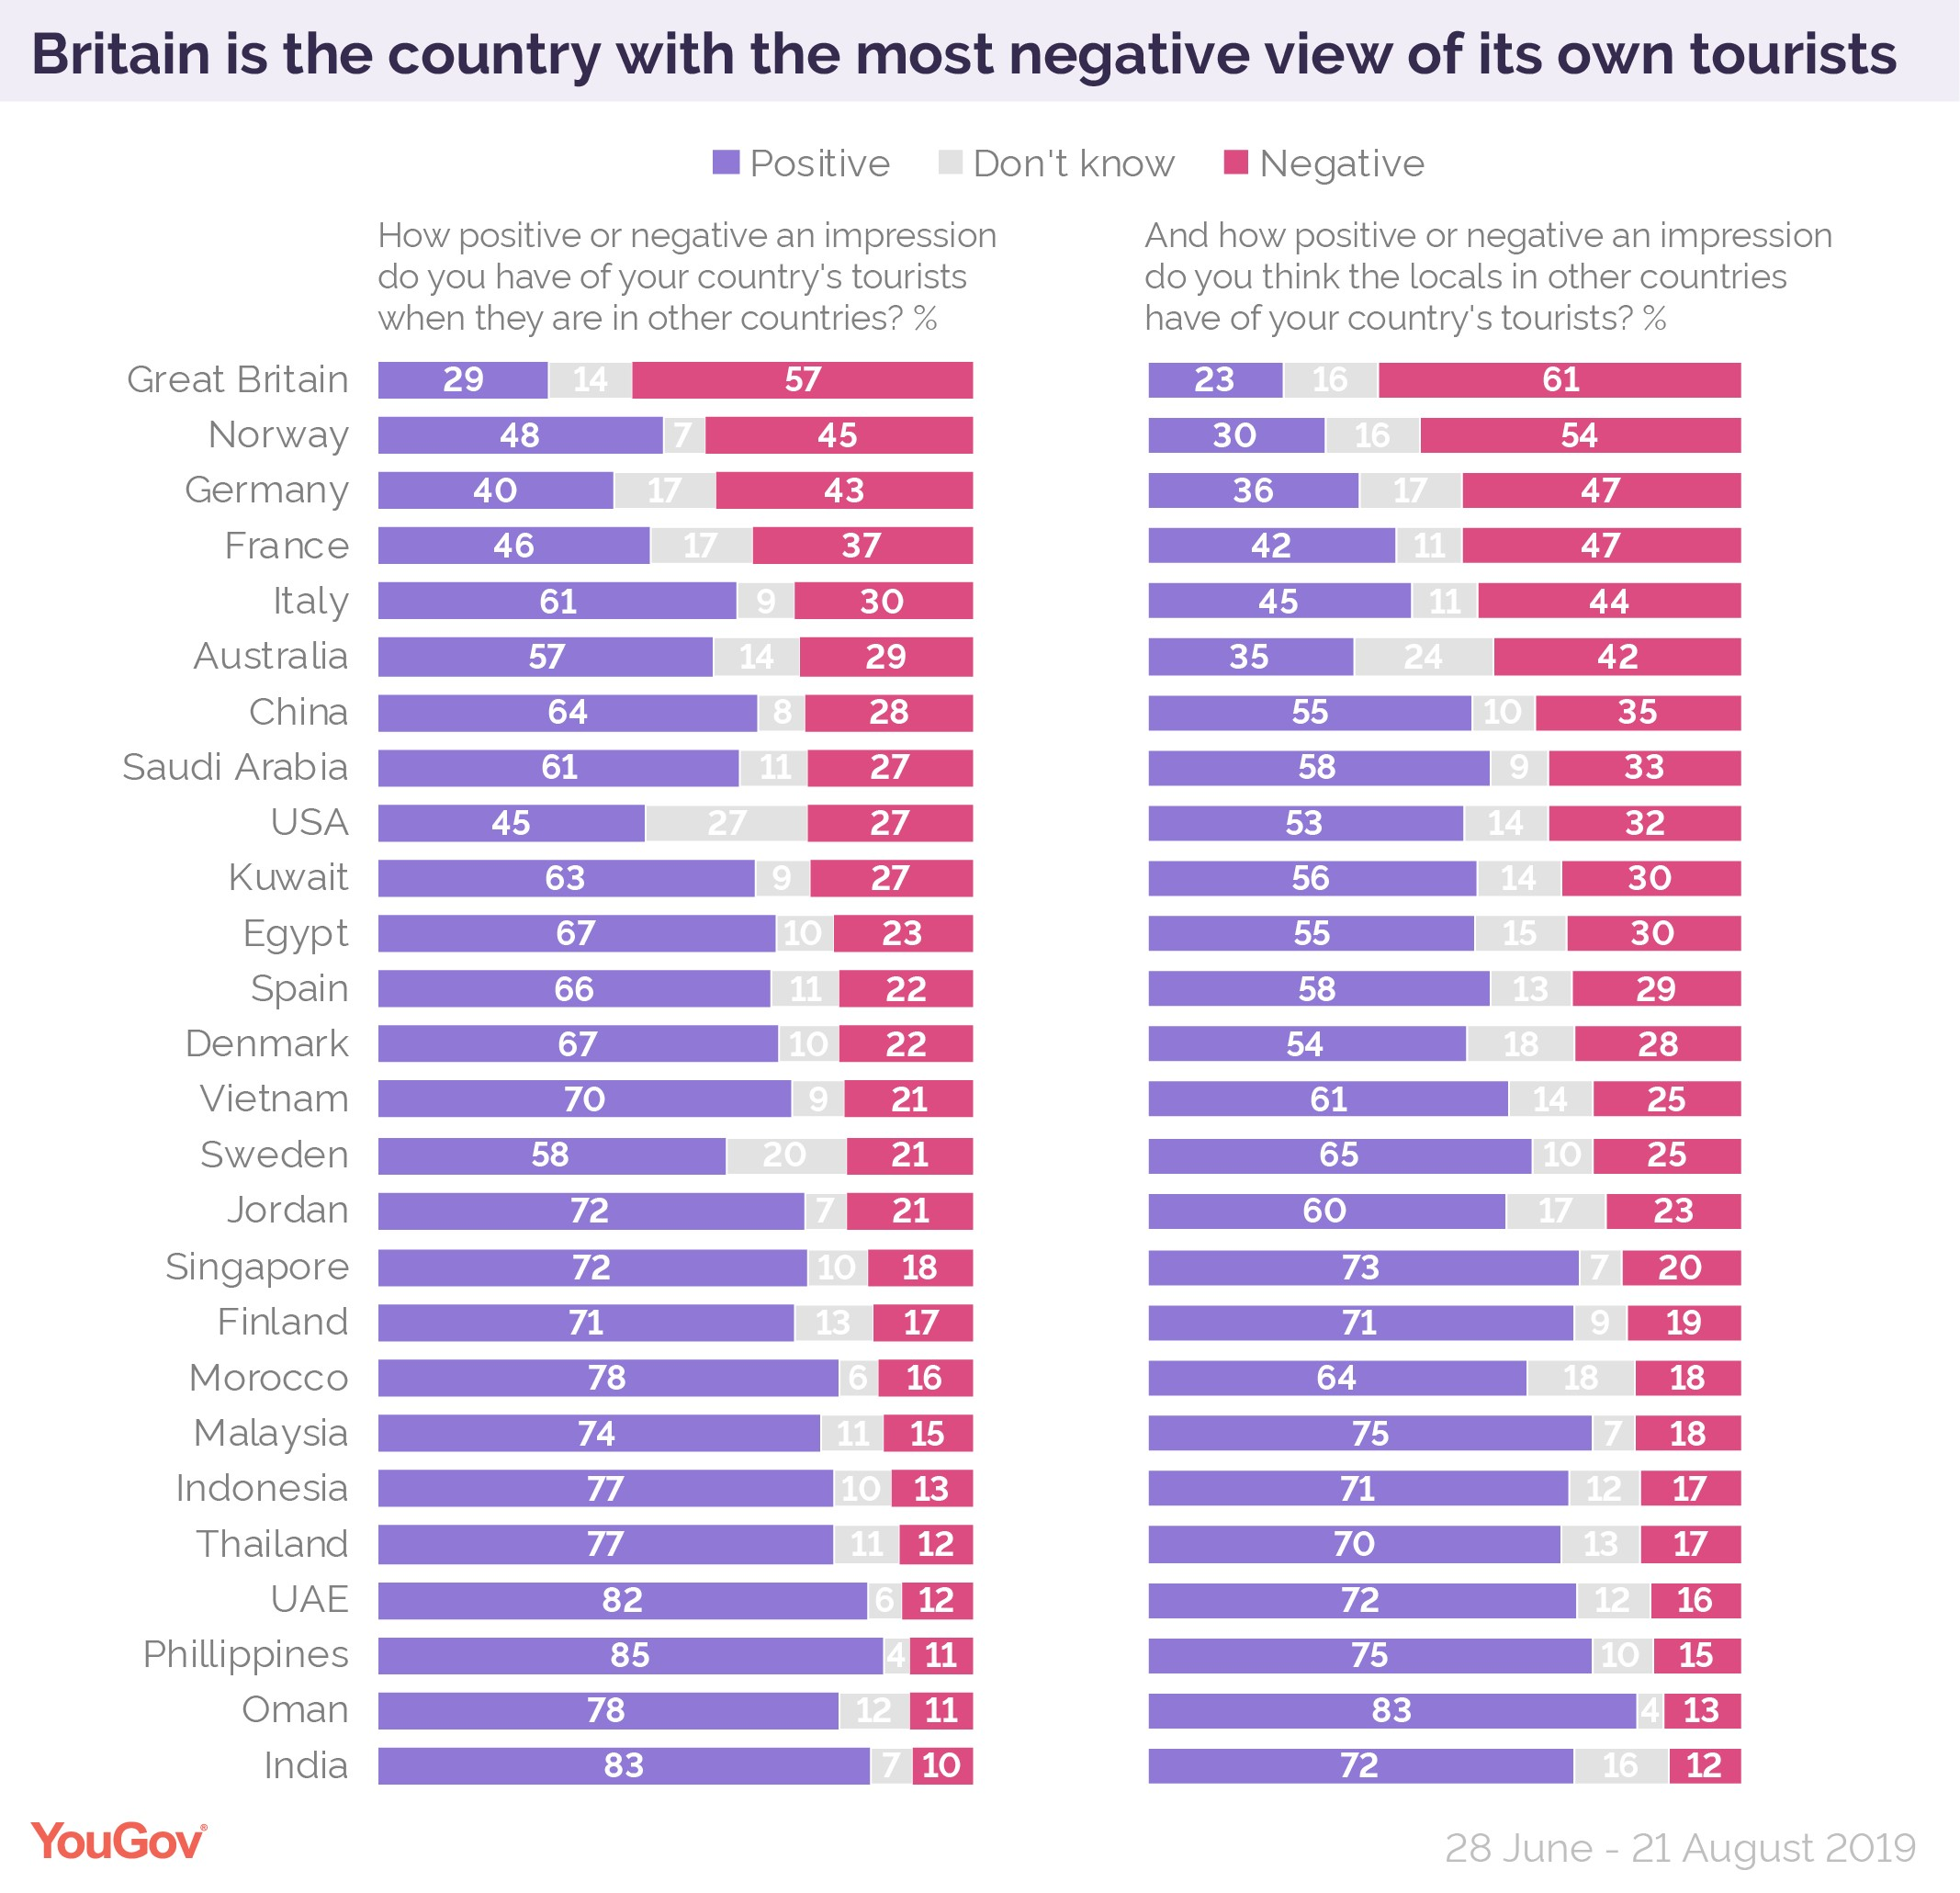 YouGov graph showing which countries have the worst view of their own tourists